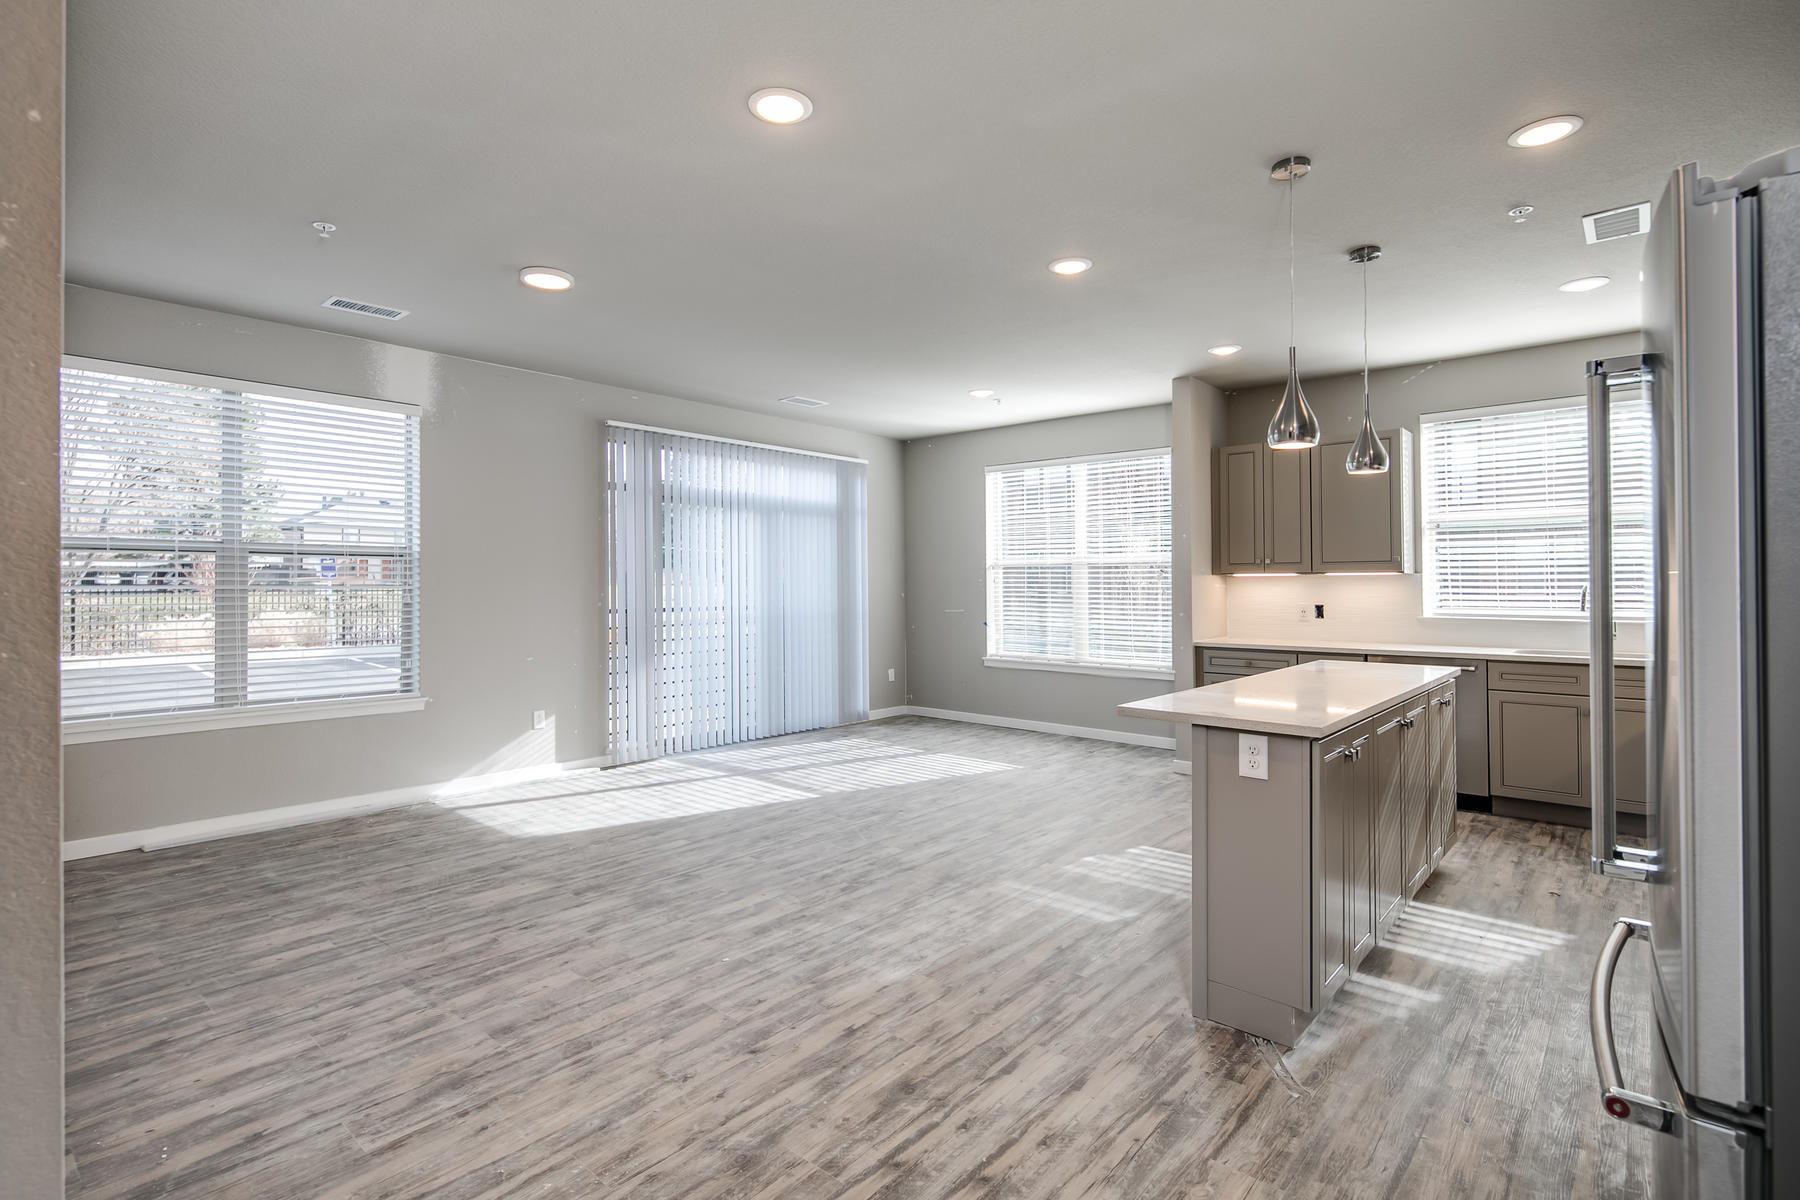 Additional photo for property listing at 155 South Monaco Parkway 155 S Monaco Pkwy #105 Denver, Colorado 80224 United States